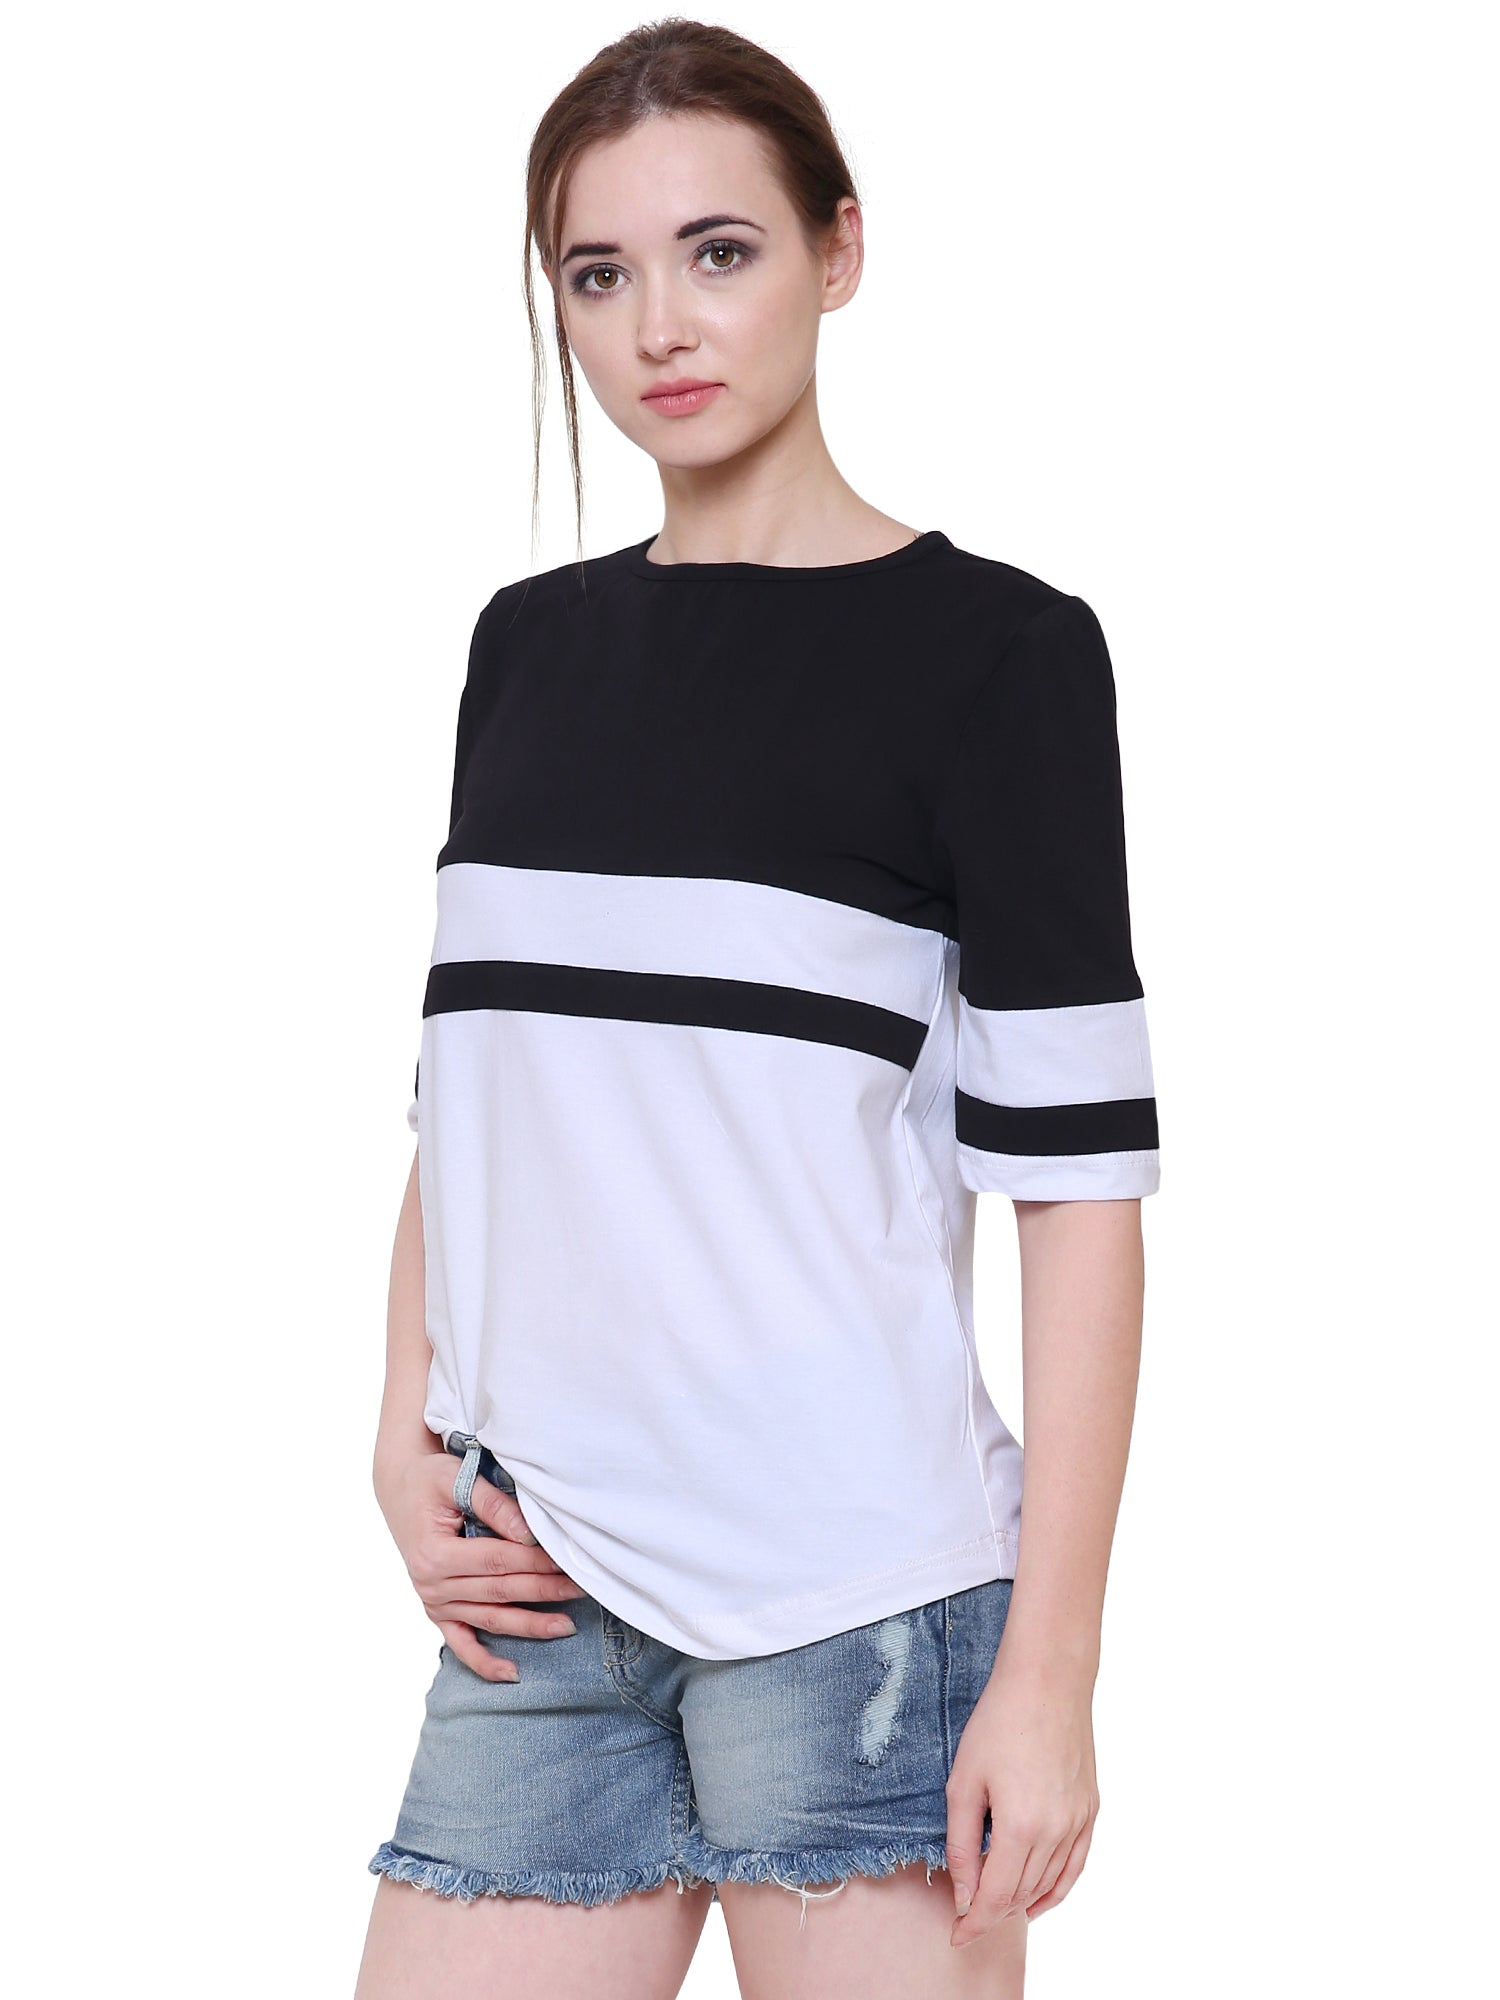 Monochrome Striped Regular Fit Top